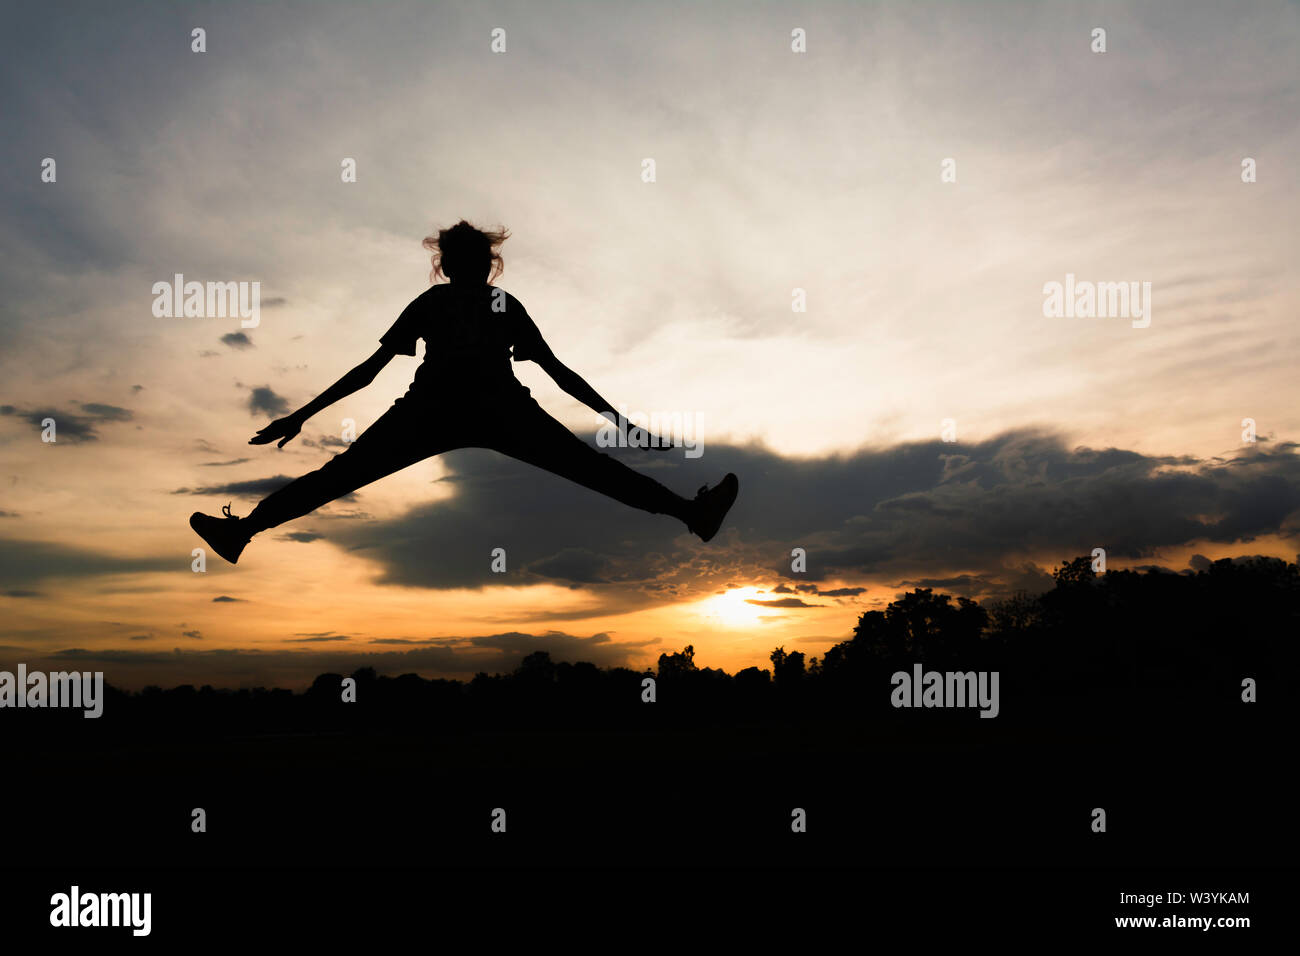 Silhouette of cheerful positive and full energy girl jumping in the air for life energy concept. - Stock Image